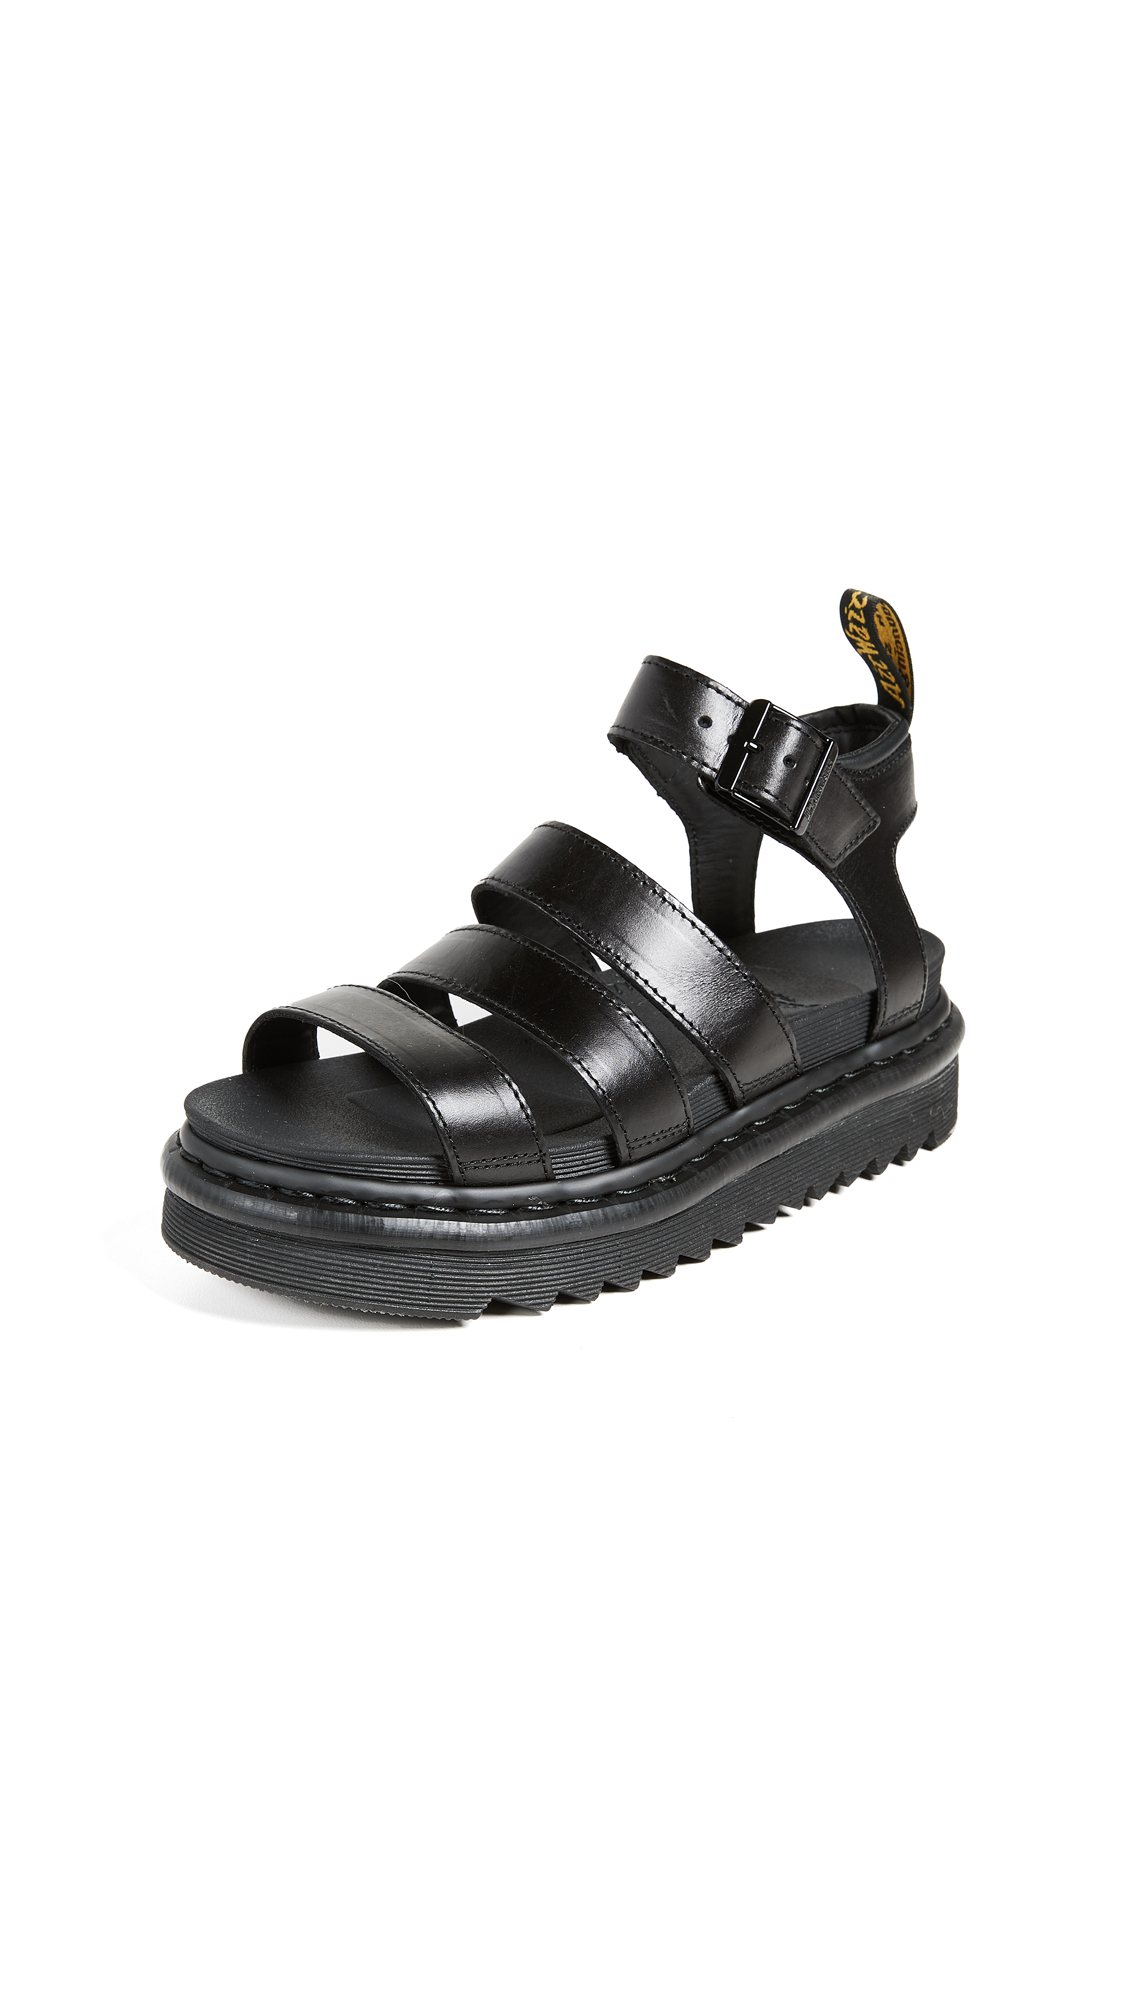 Dr. Martens Blaire Adjustable Strap Sandals - Black Brando